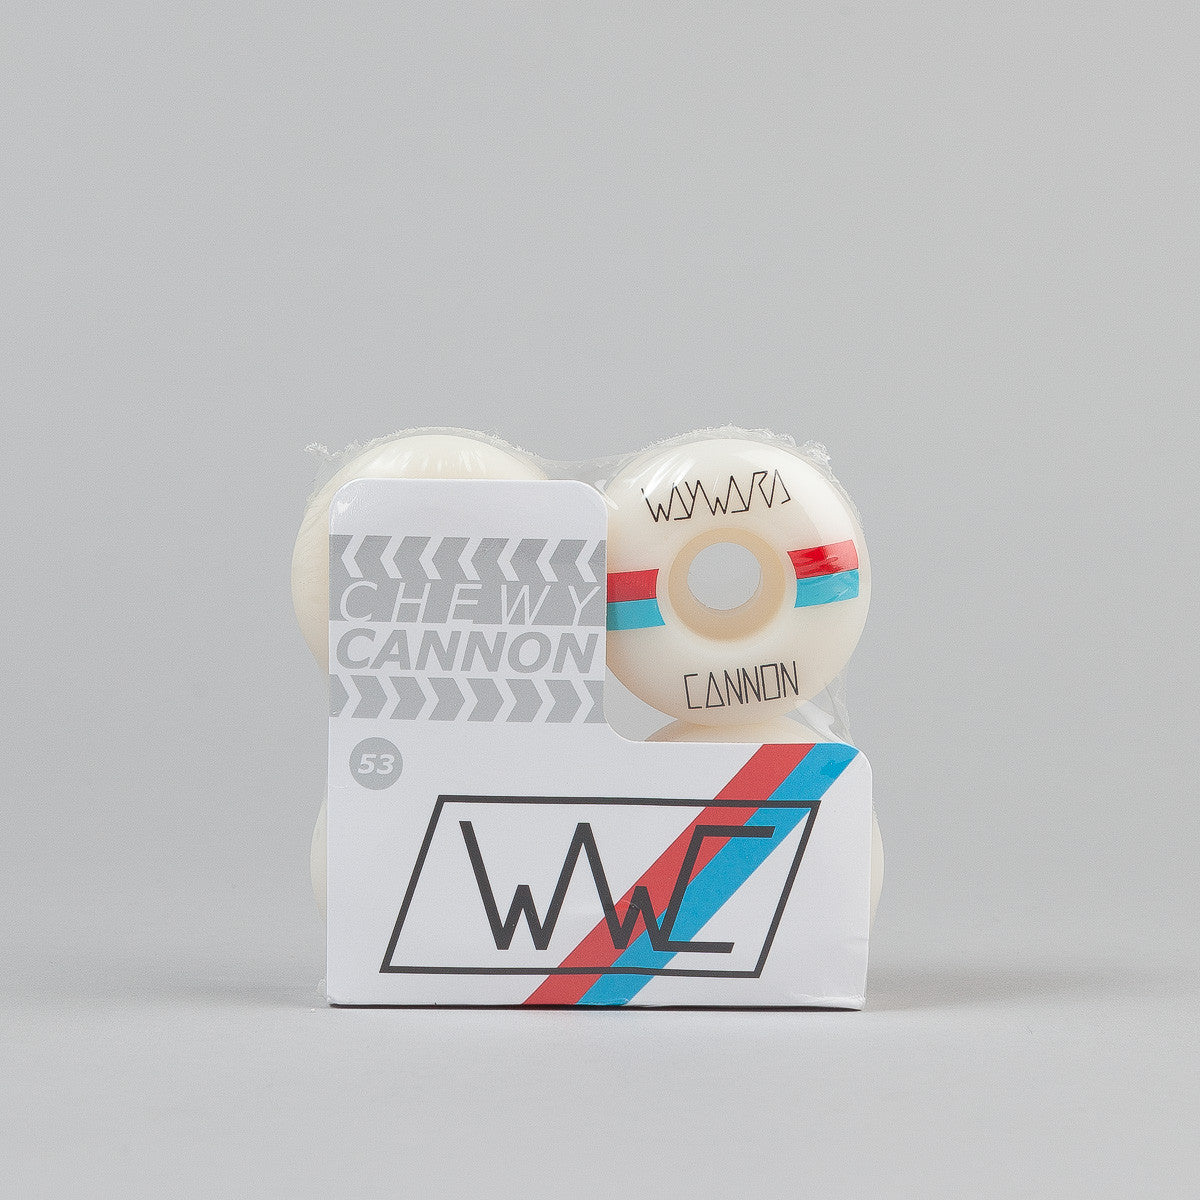 Wayward Chewy Cannon Race Stripes Wheels - 101A Wide 53mm